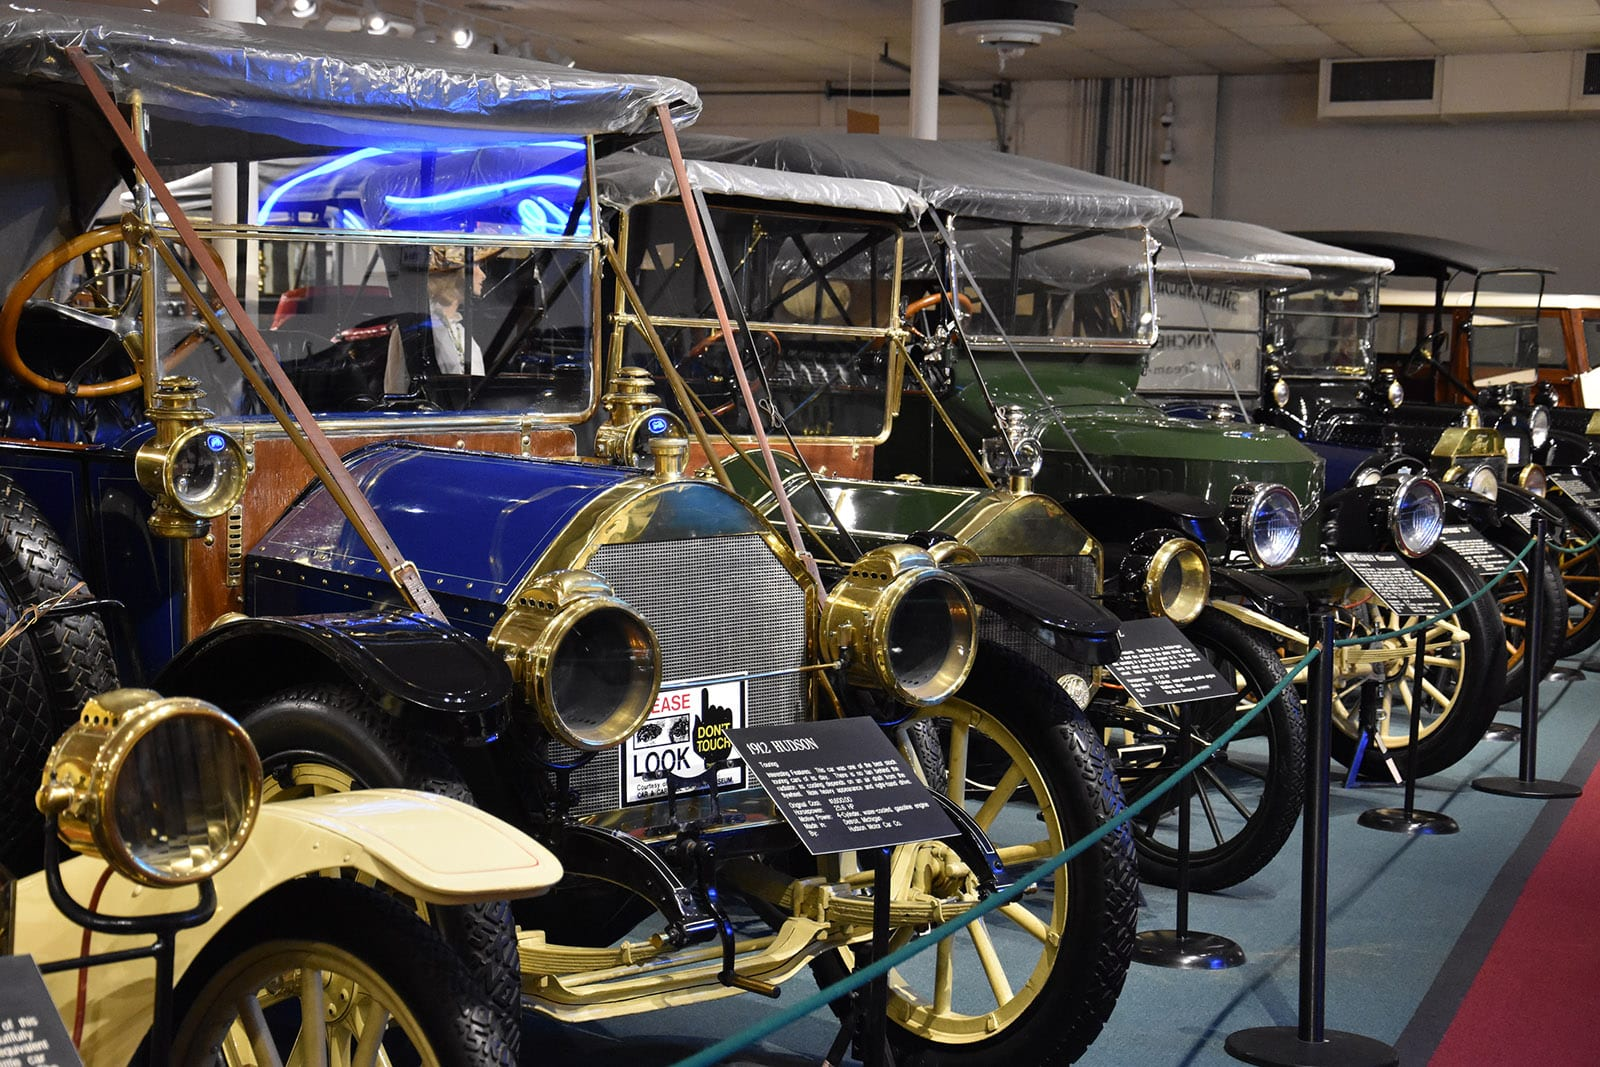 Visit Page County and the Car and Carriage Caravan Museum - Virginia Association of Counties